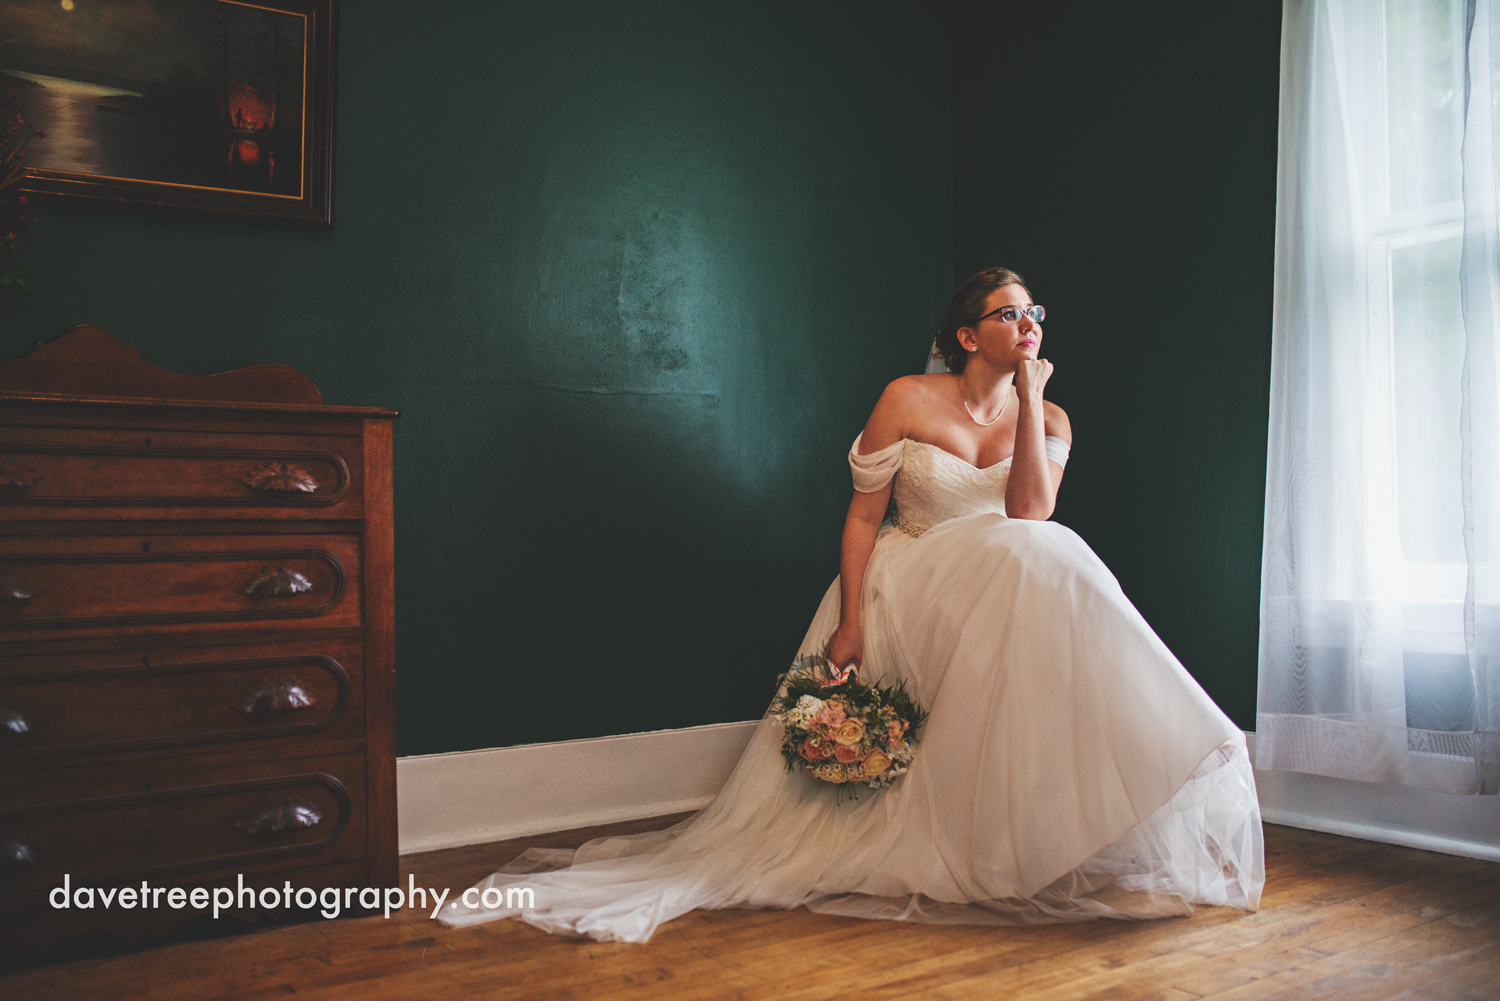 grand_haven_wedding_photographer_weaver_house_wedding_14.jpg